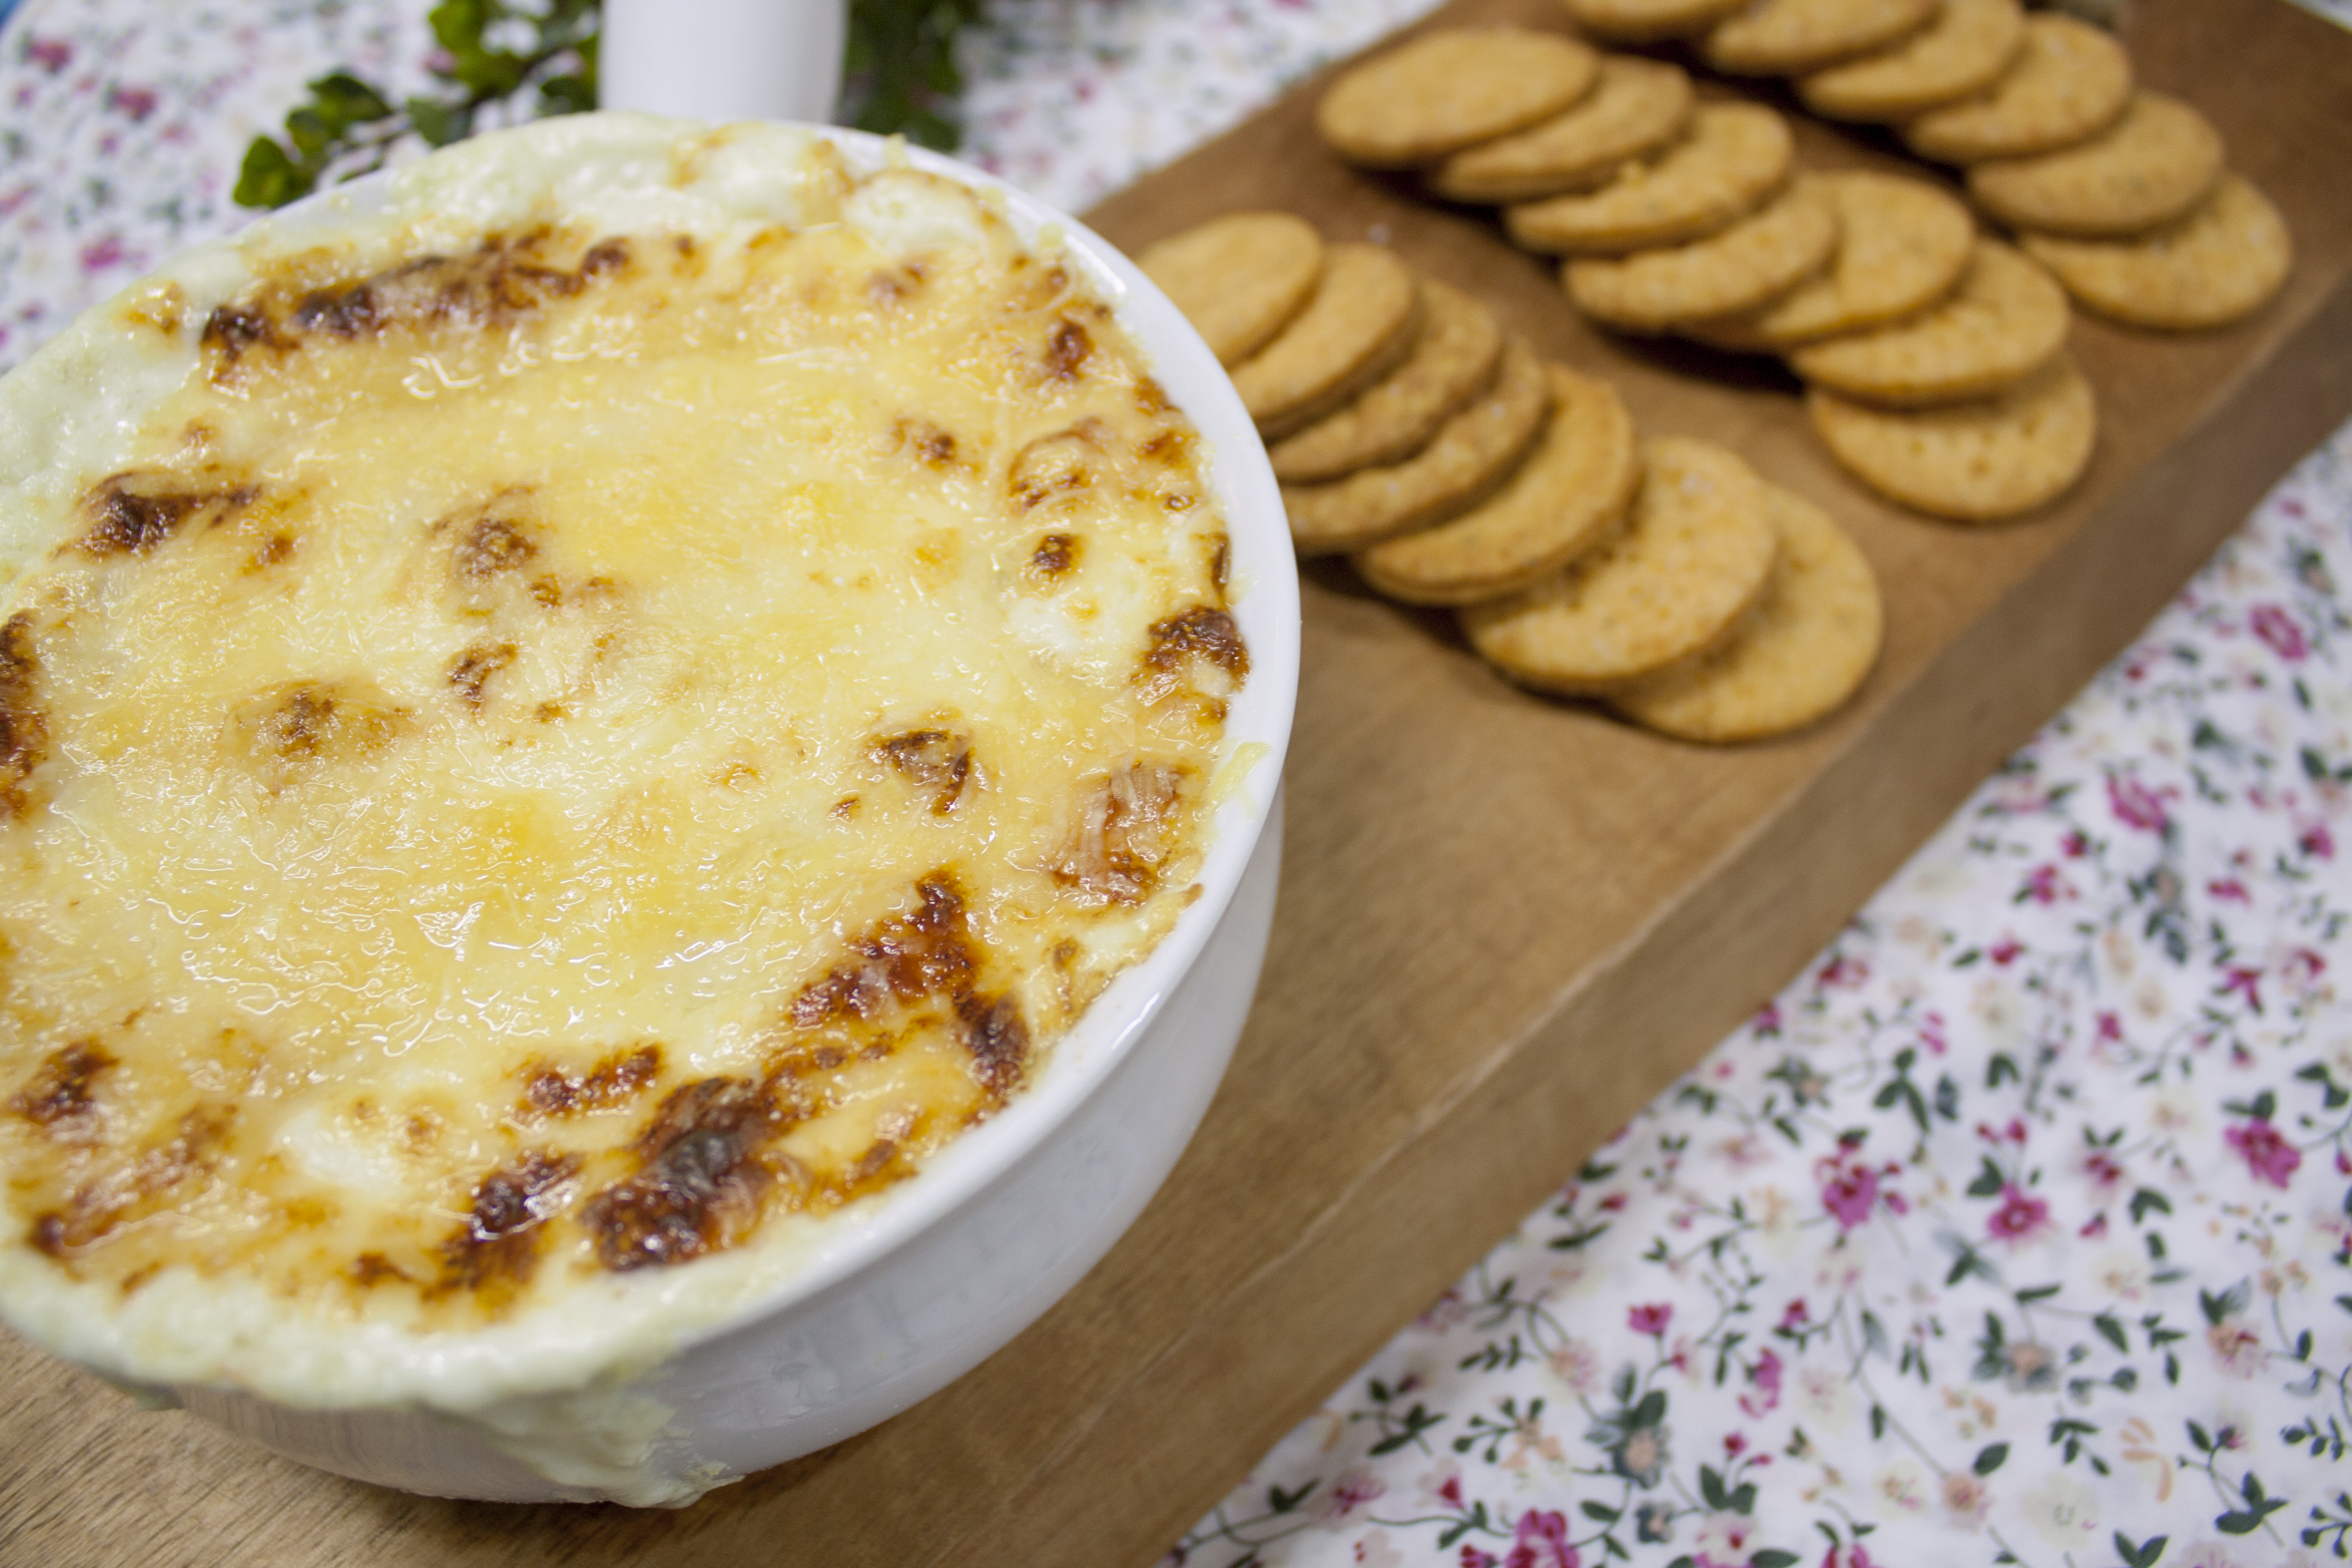 Artichoke and cheese hot dip